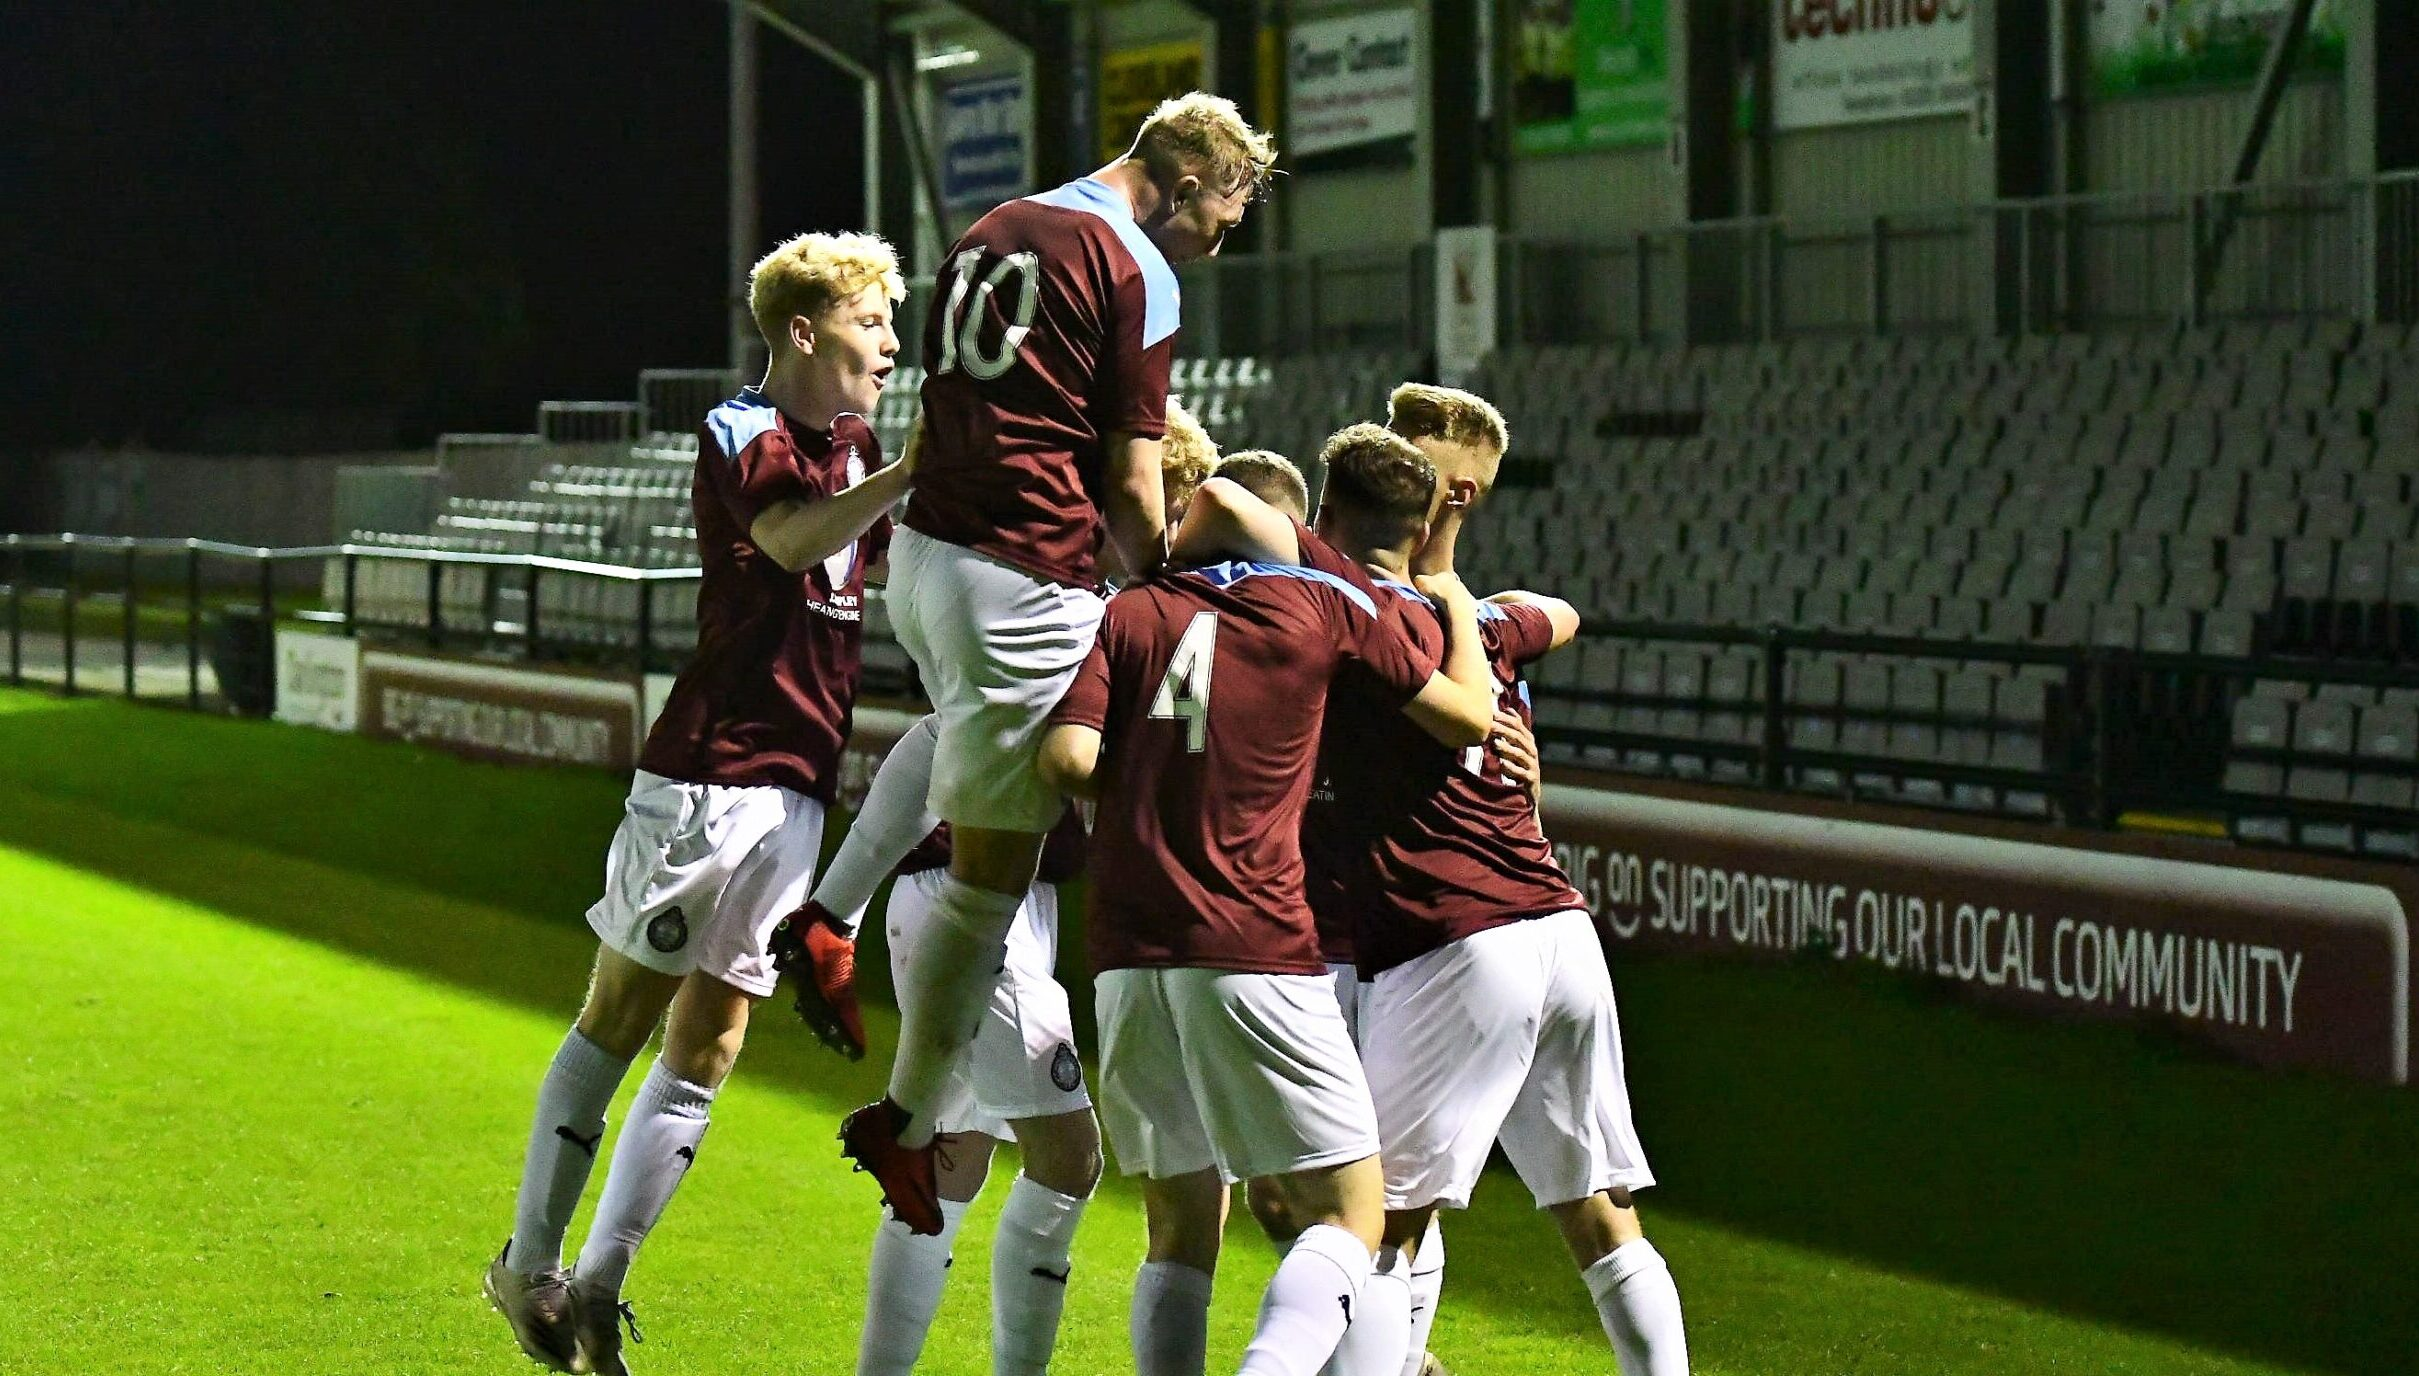 Mariners learn opponents in FA Youth Cup